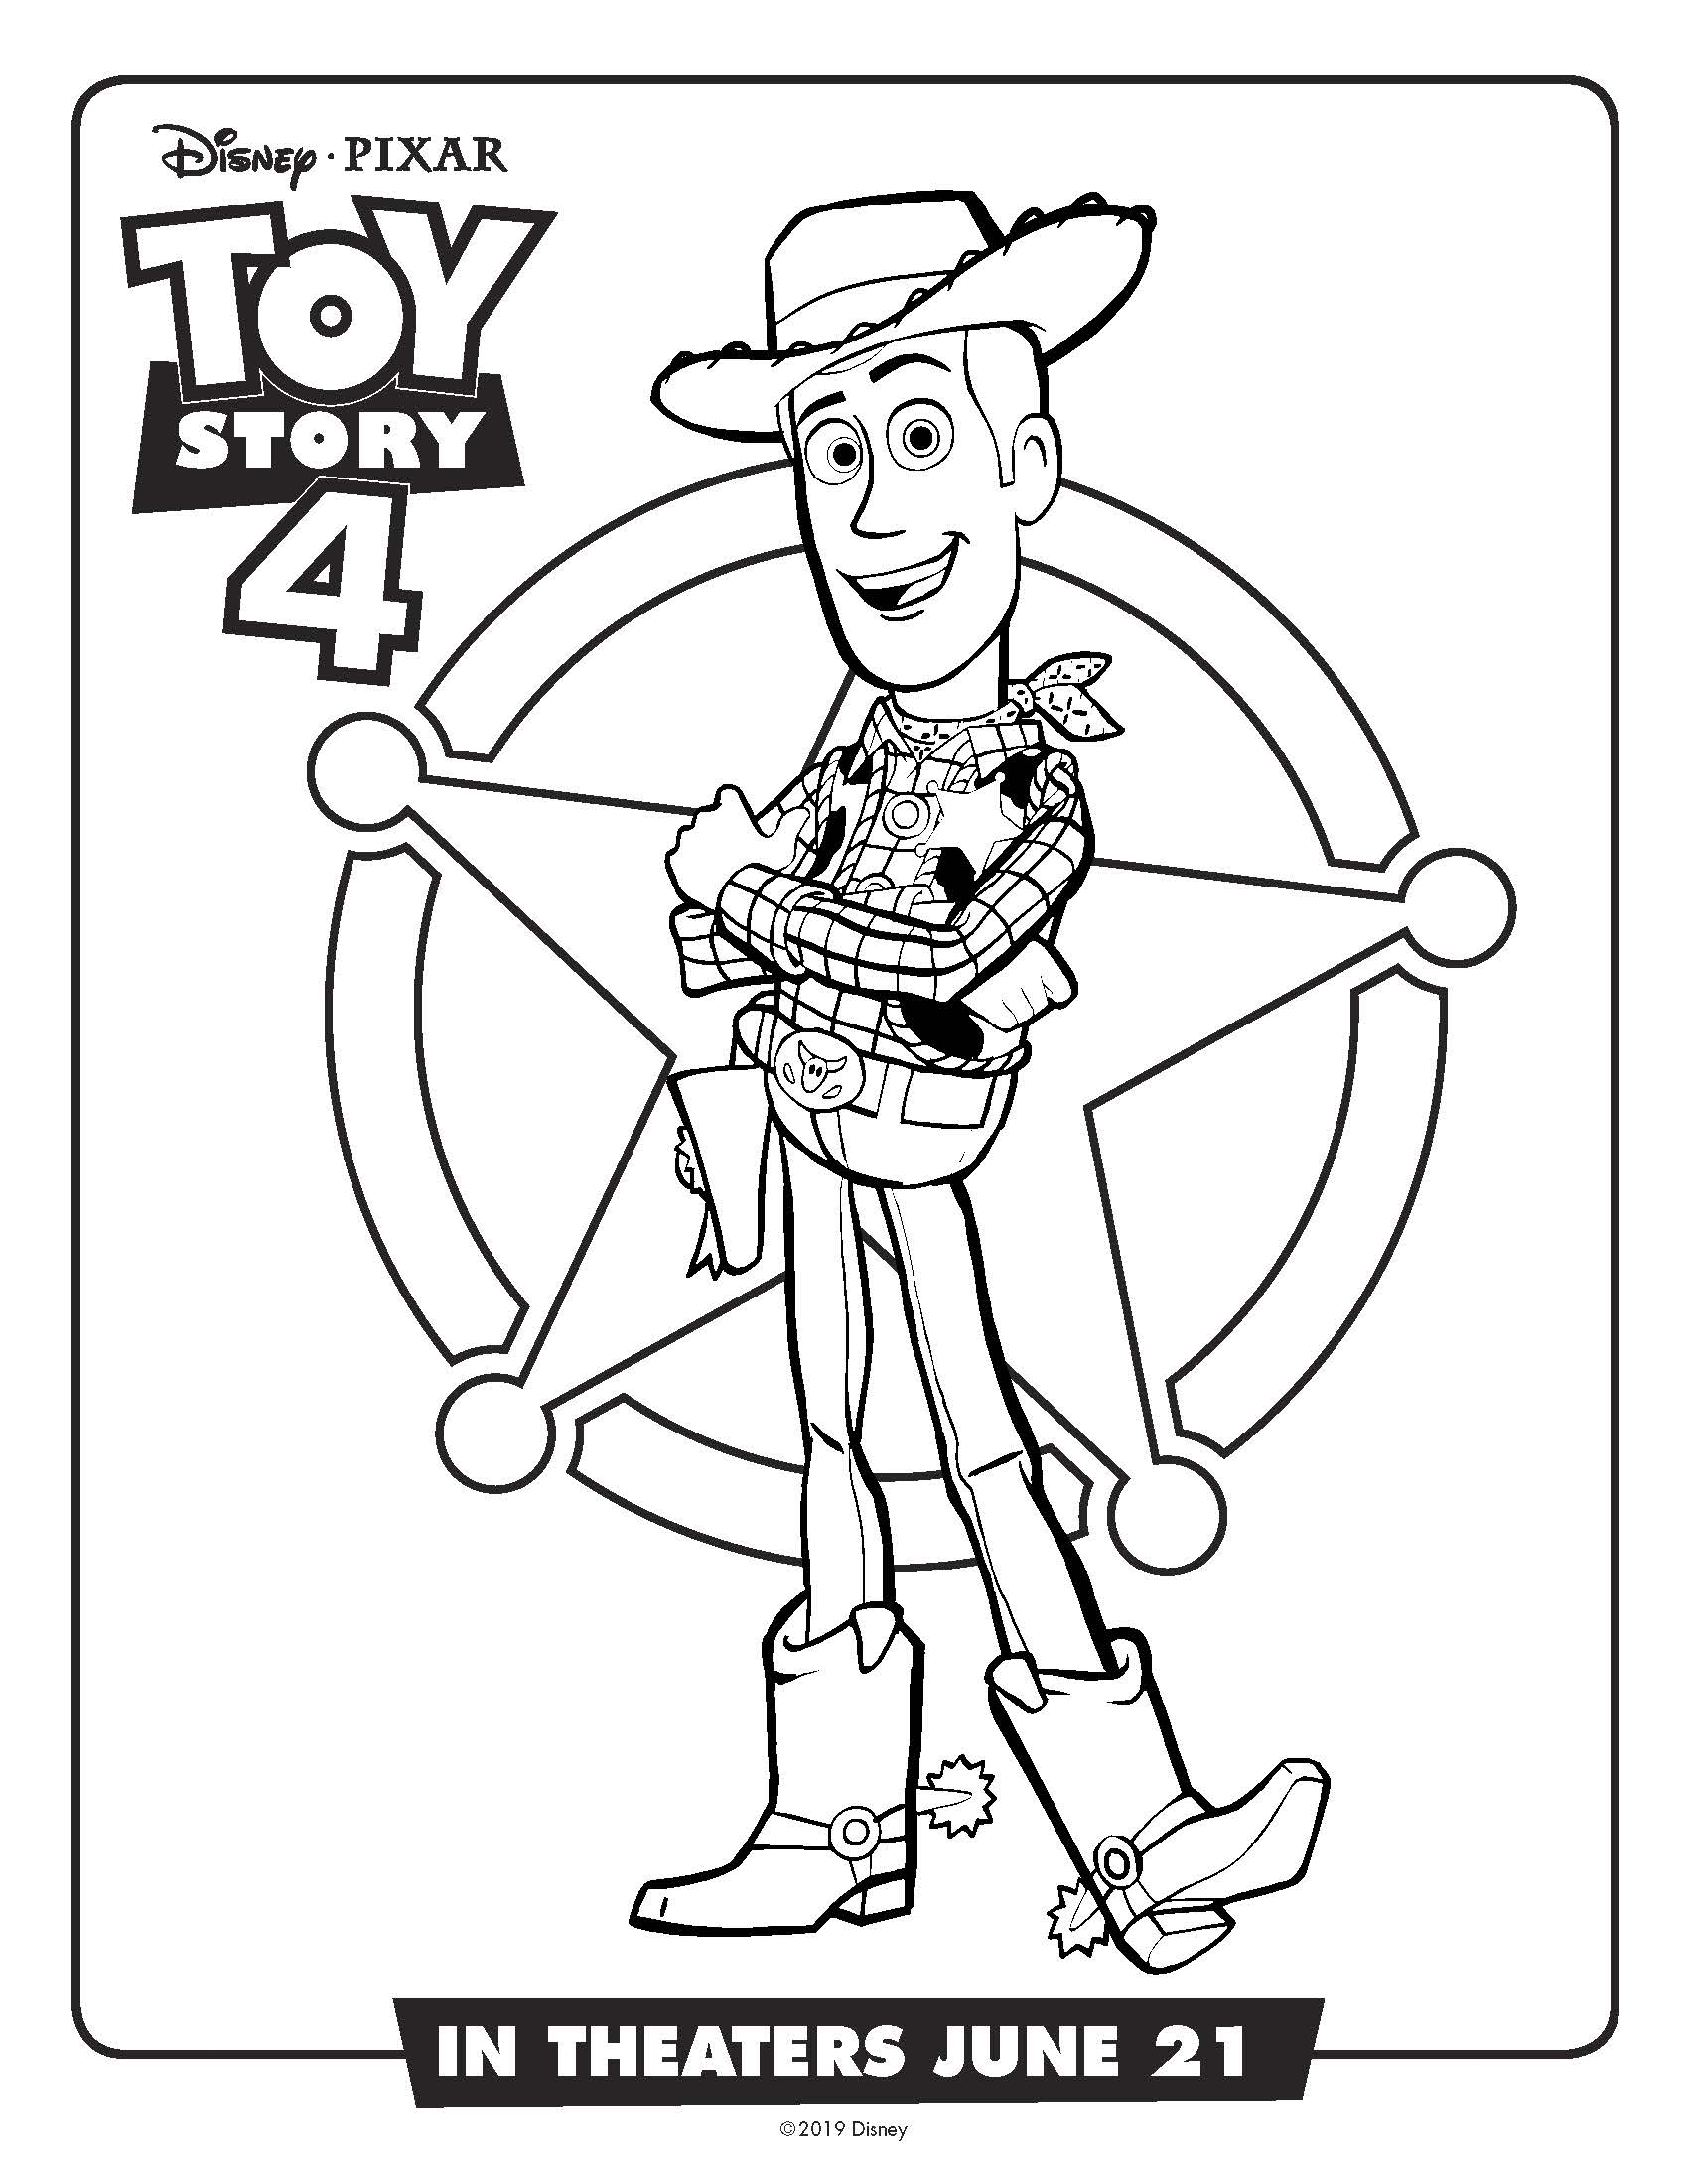 Toy Story 4 Coloring Pages and Activity Sheets Crazy